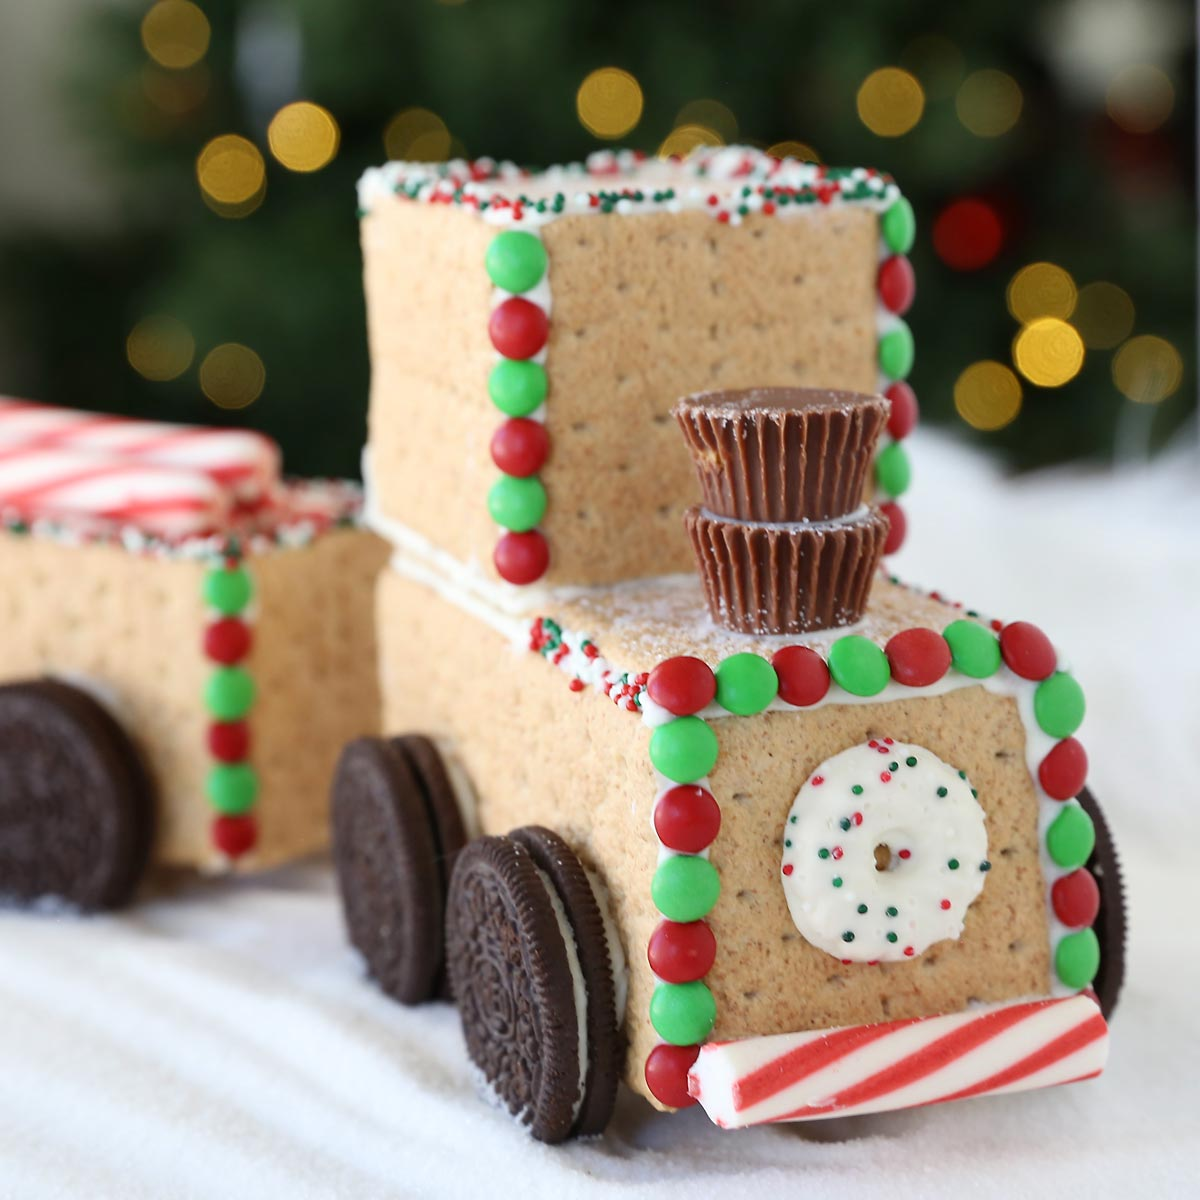 Graham cracker train engine